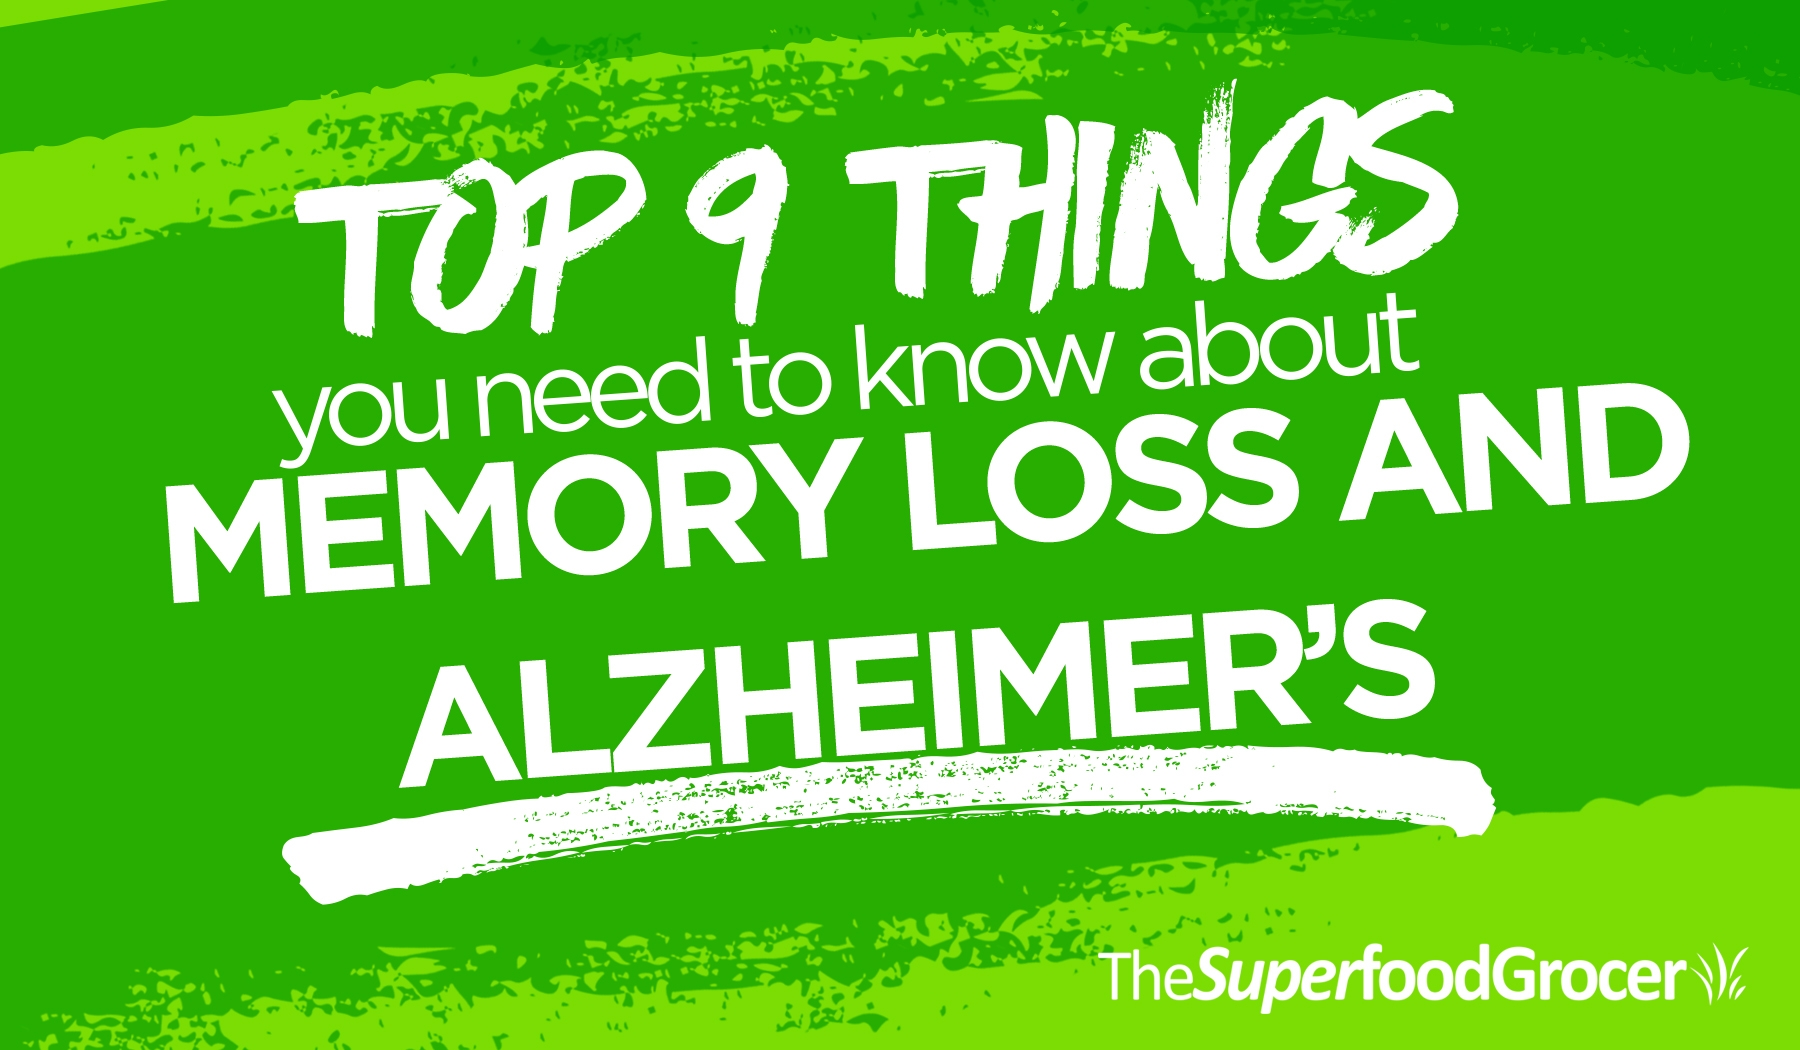 Top 9 Things You Need To Know About Memory Loss and Alzheimer's